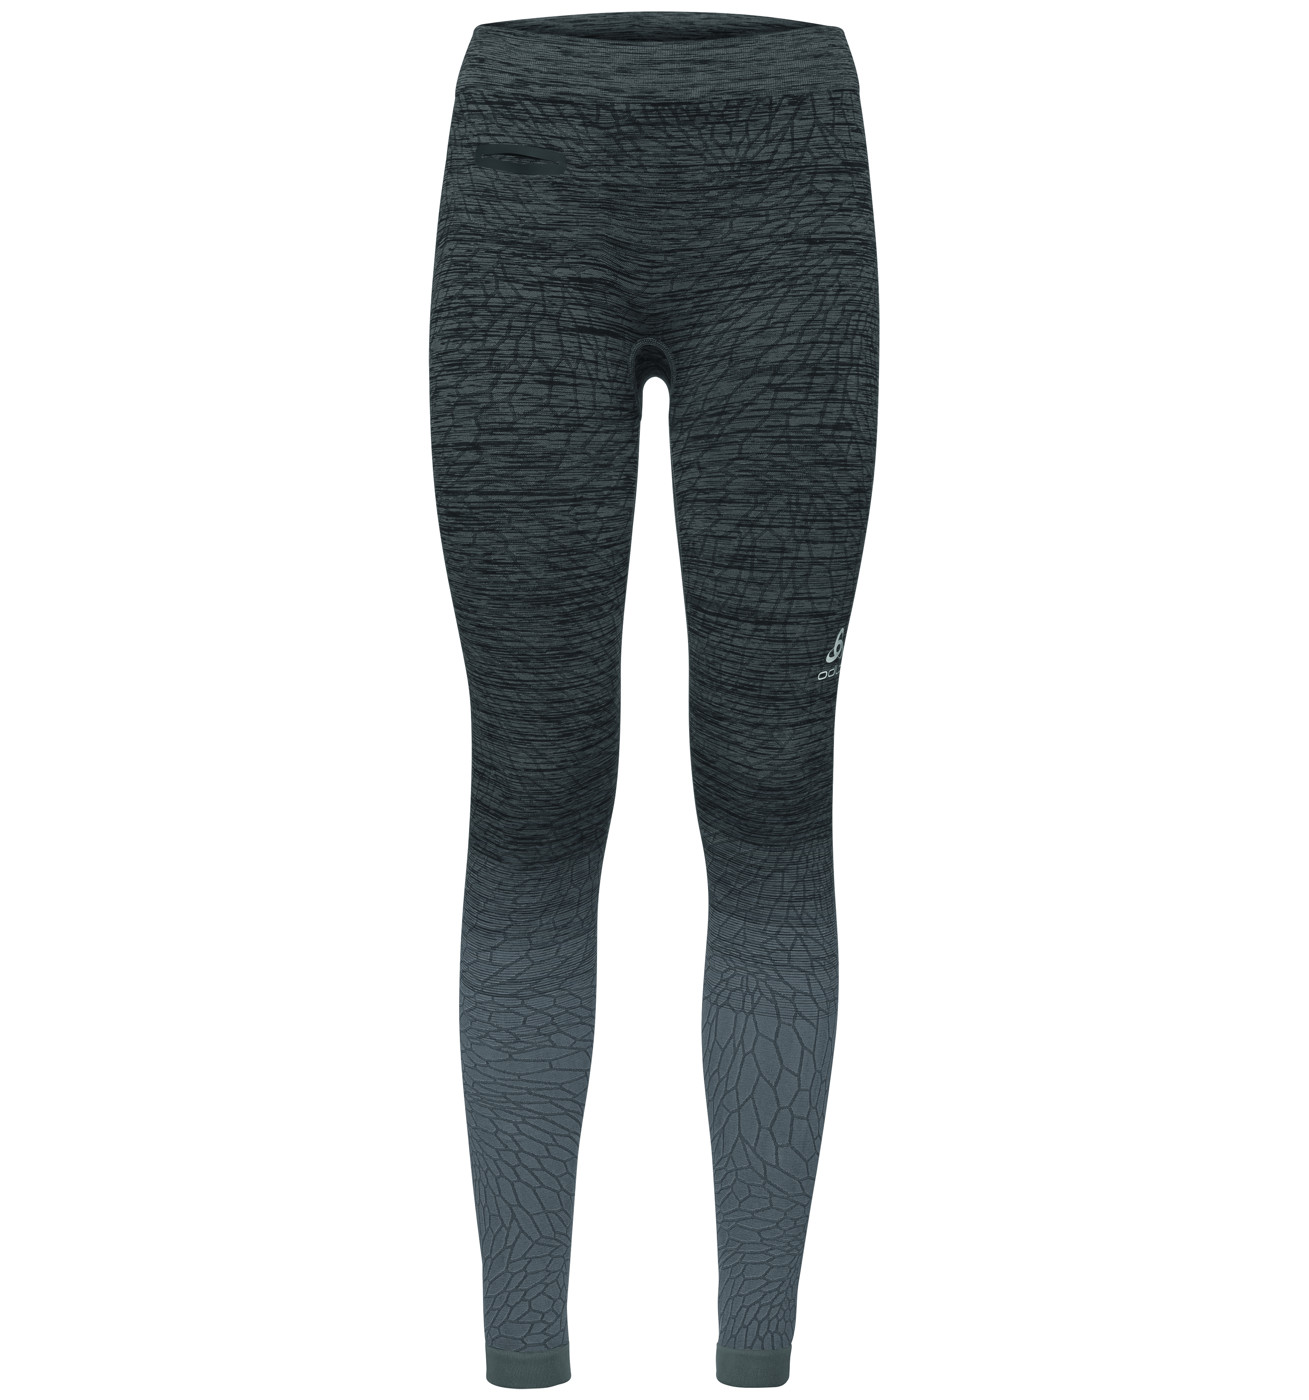 ODLO BL Bottom long MAIA - Damen